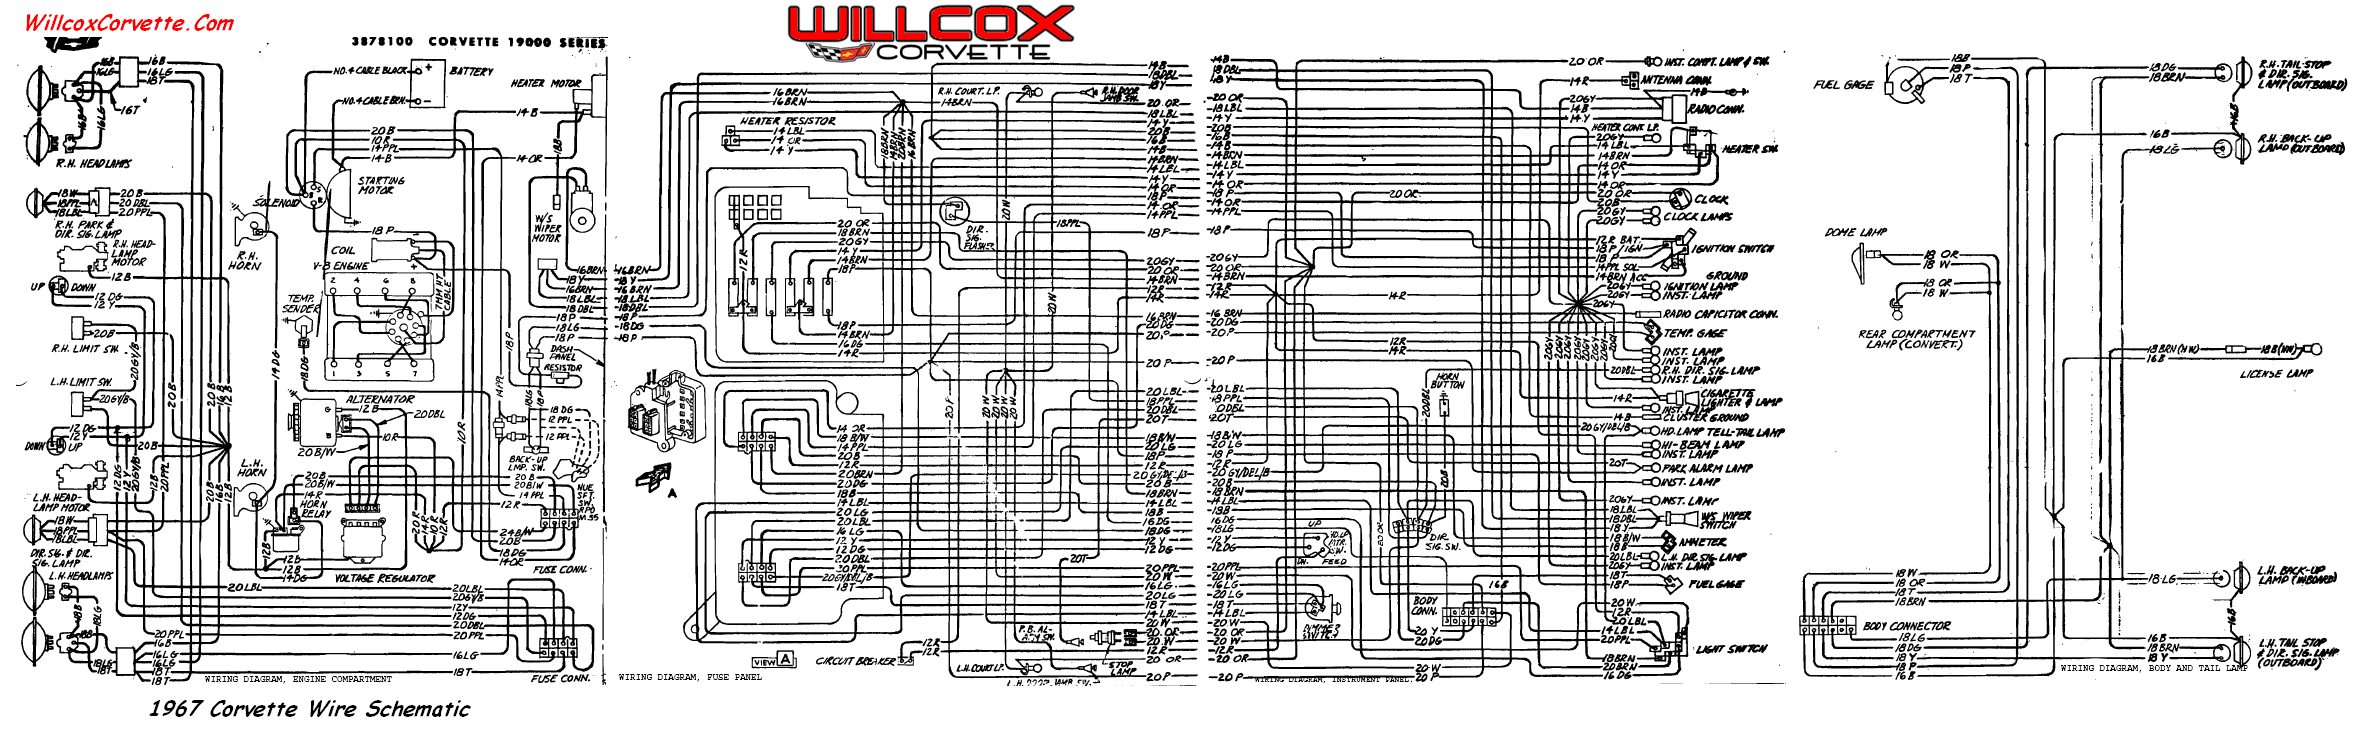 corvette wire diagram wiring diagrams schematics rh alexanderblack co heat tracing wiring diagram tracing wiring diagram of an alternator